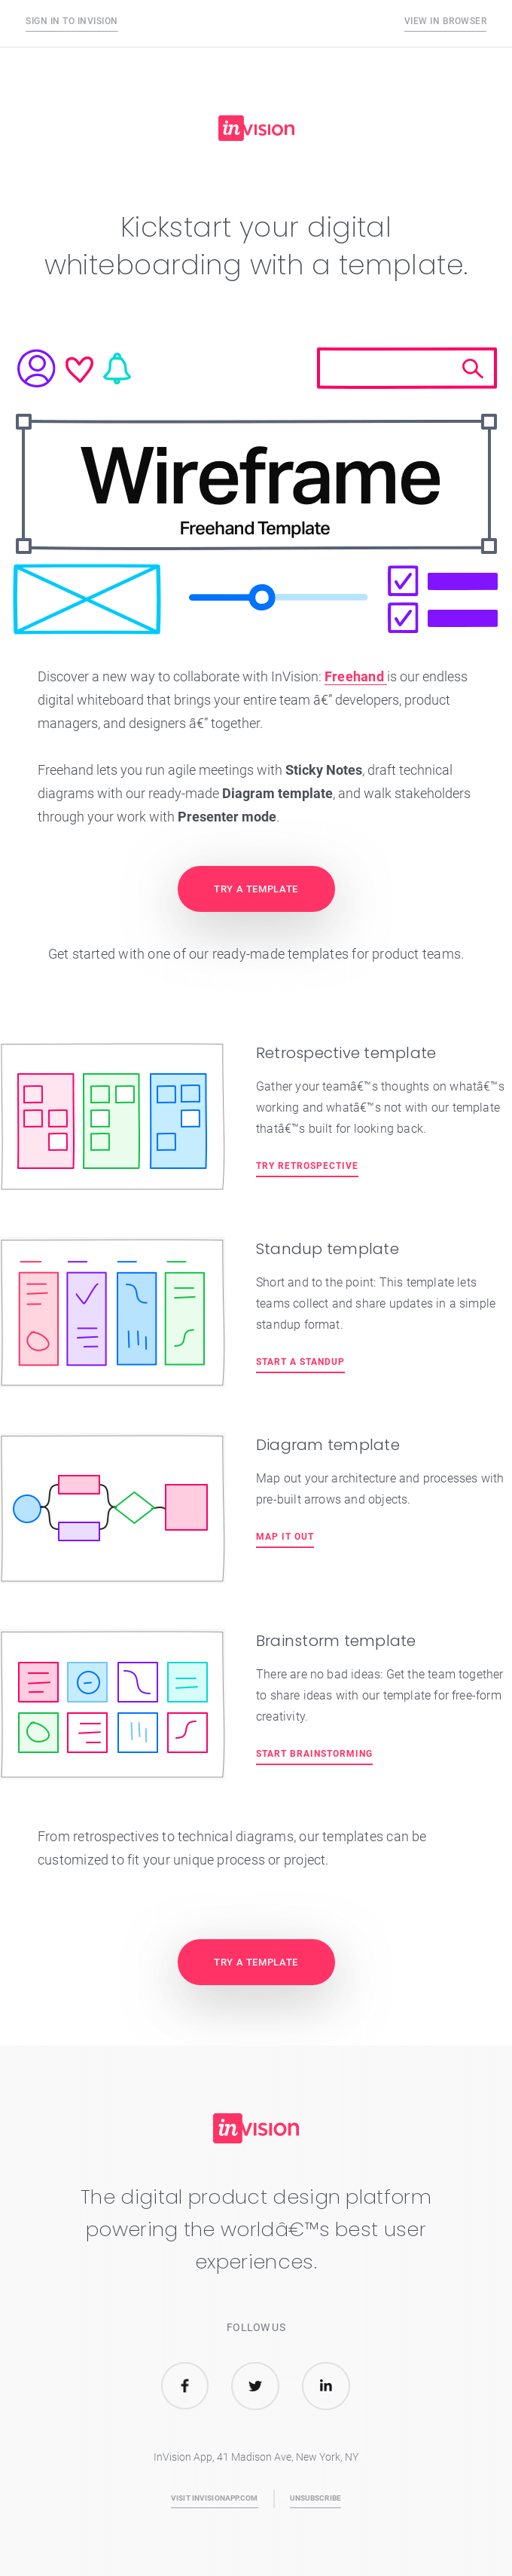 New for Freehand: Templates for retrospectives, standups and more